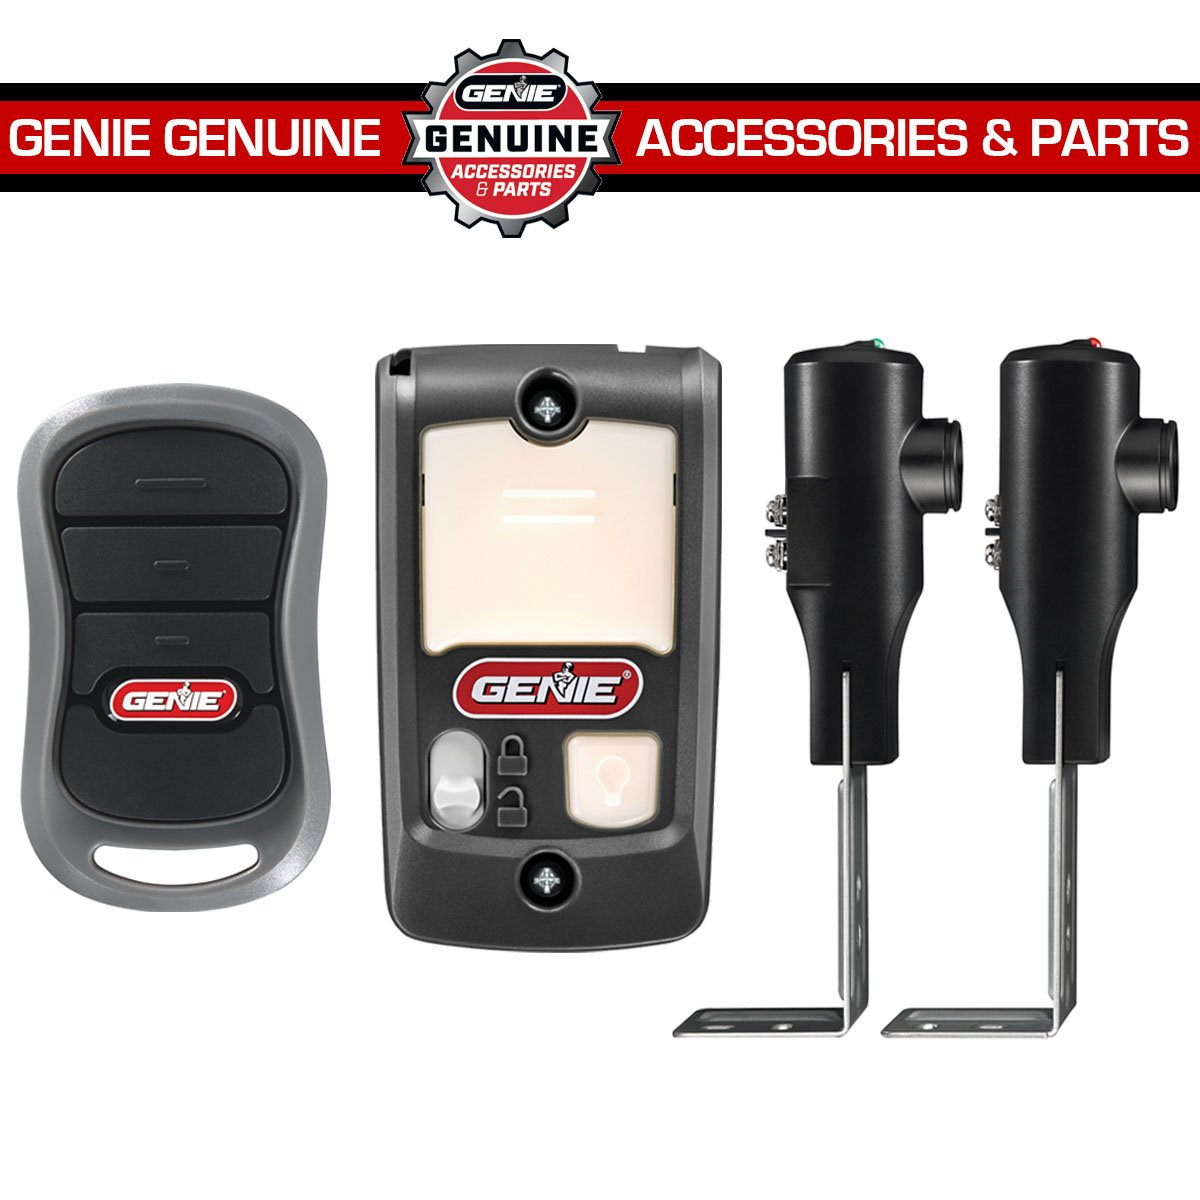 Genie PowerLift Garage Door Opener – ½ HP AC Screw Opener with 2 3-Button Pre-programmed Remotes, Multi-Function Wall Console and Safe-T-Beam Sensor System – Model 2562-TC